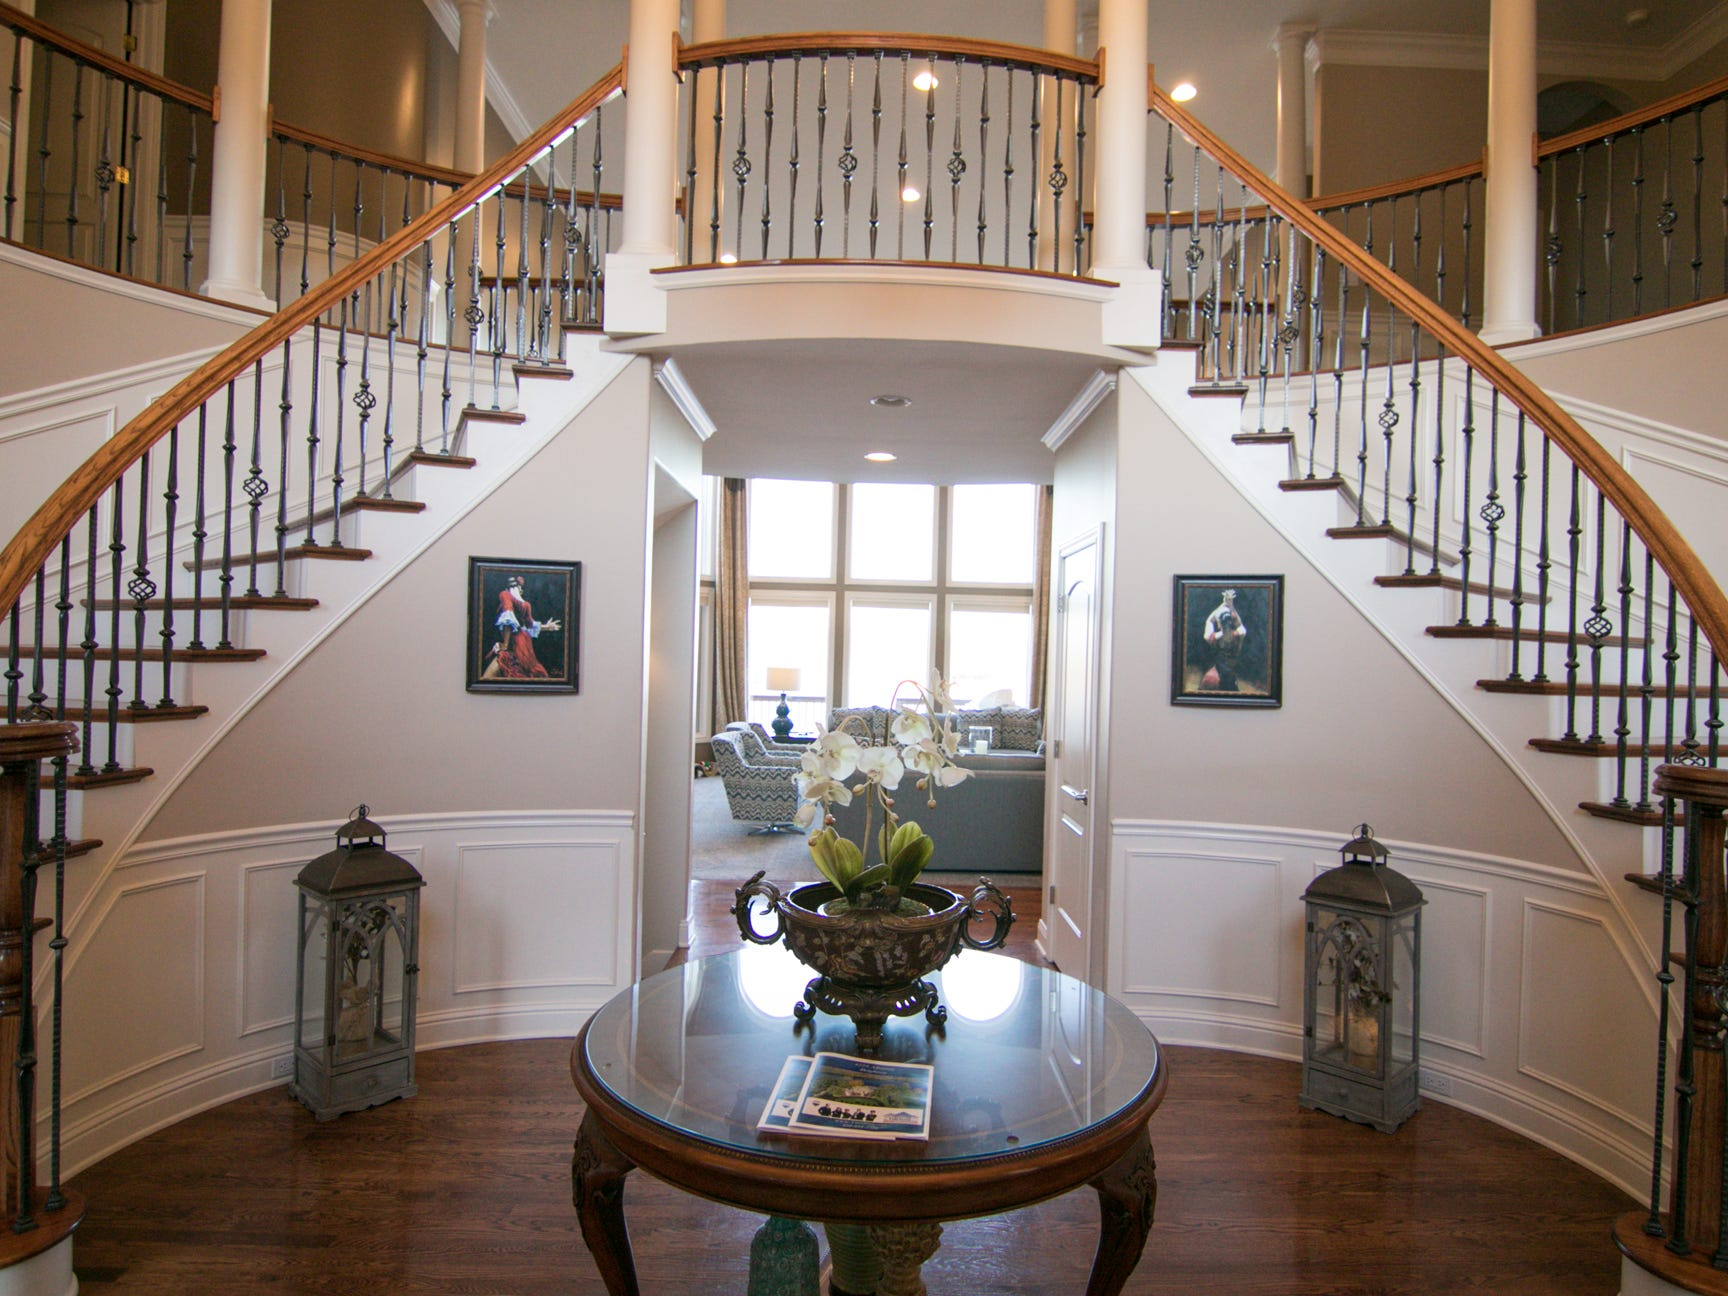 A curved grand staircase is crowned with a curved balcony on the second floor of Adam and Michelle Harris's Genoa Township home, shown Friday, Jan. 4, 2019.